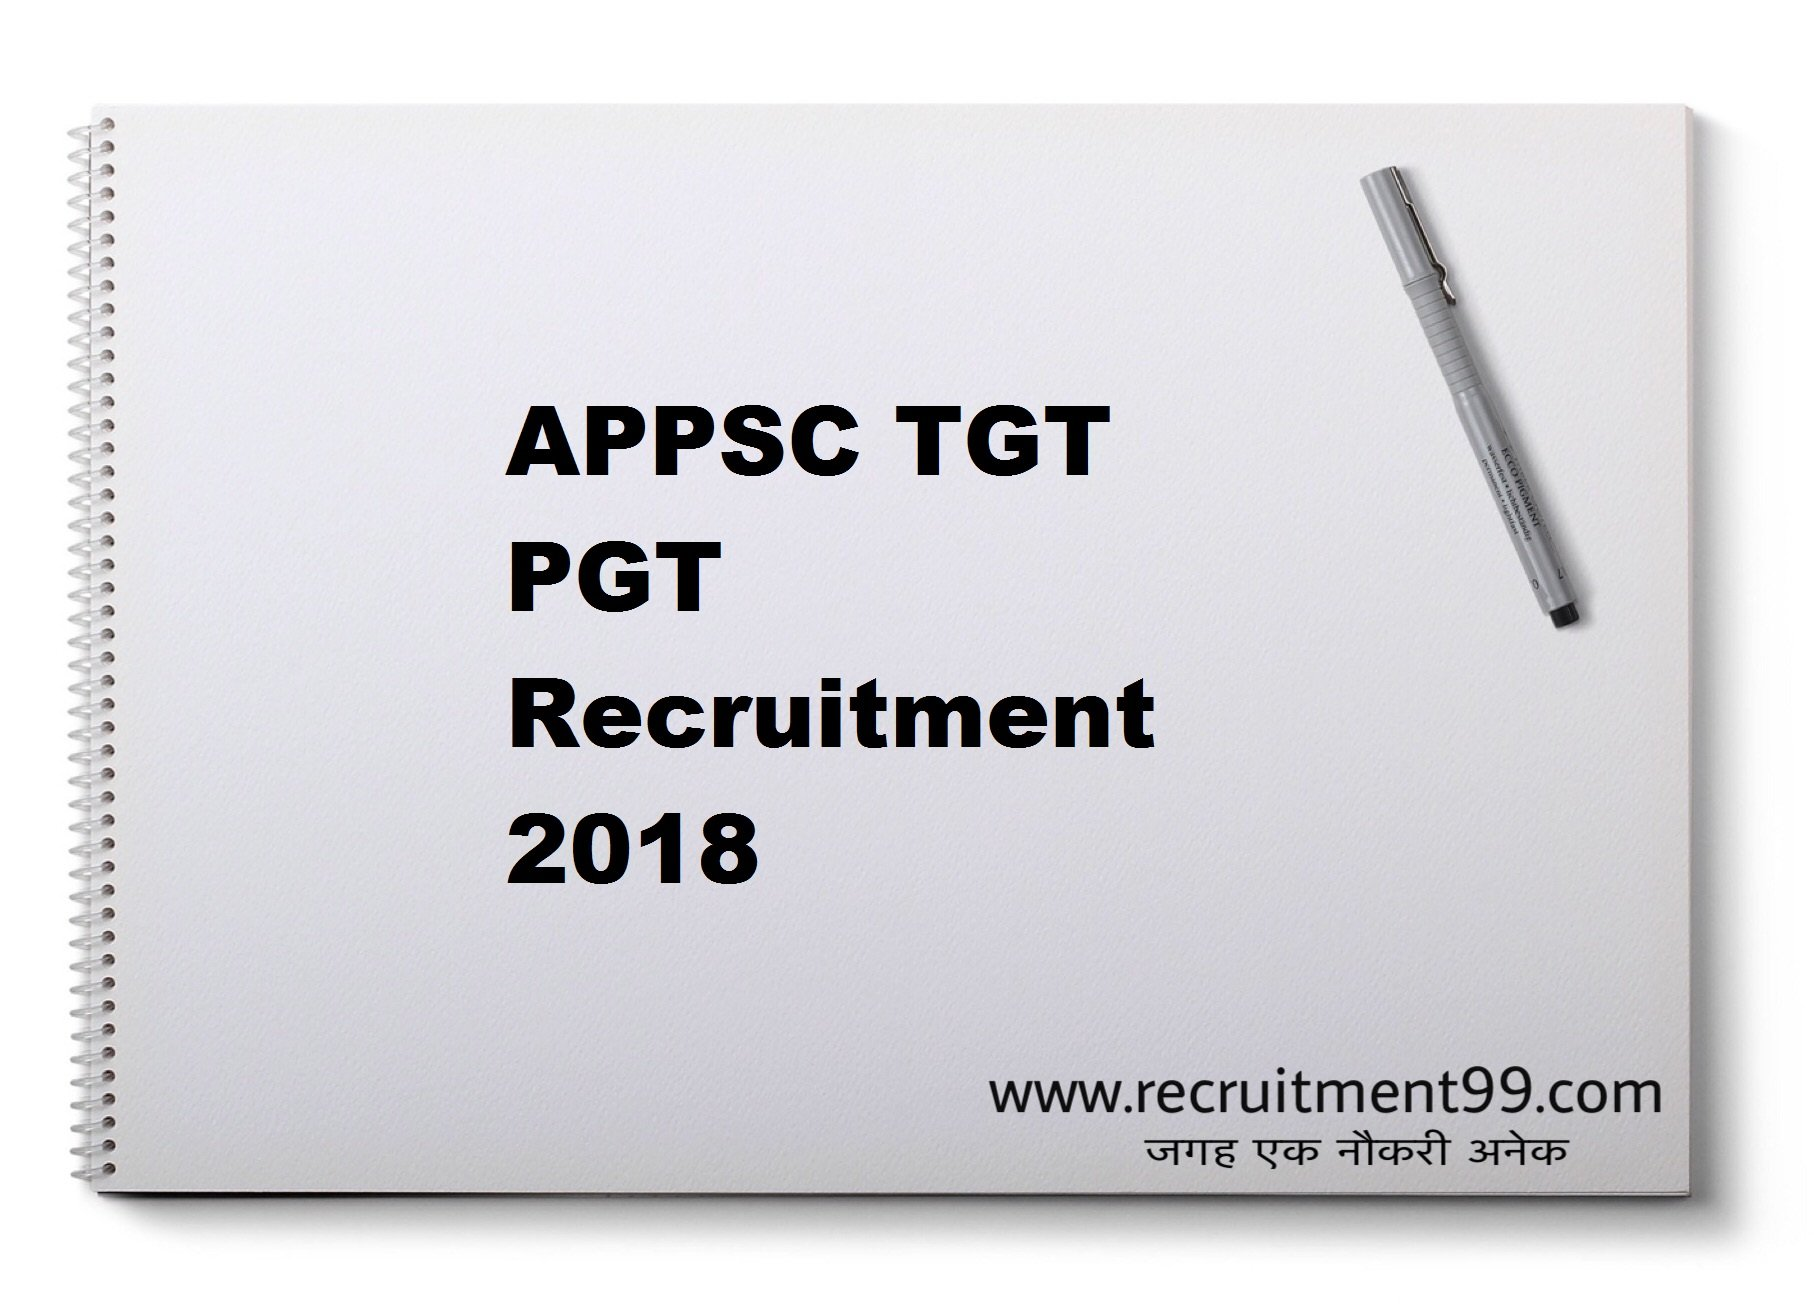 APPSC TGT PGT Recruitment Admit Card Result 2018